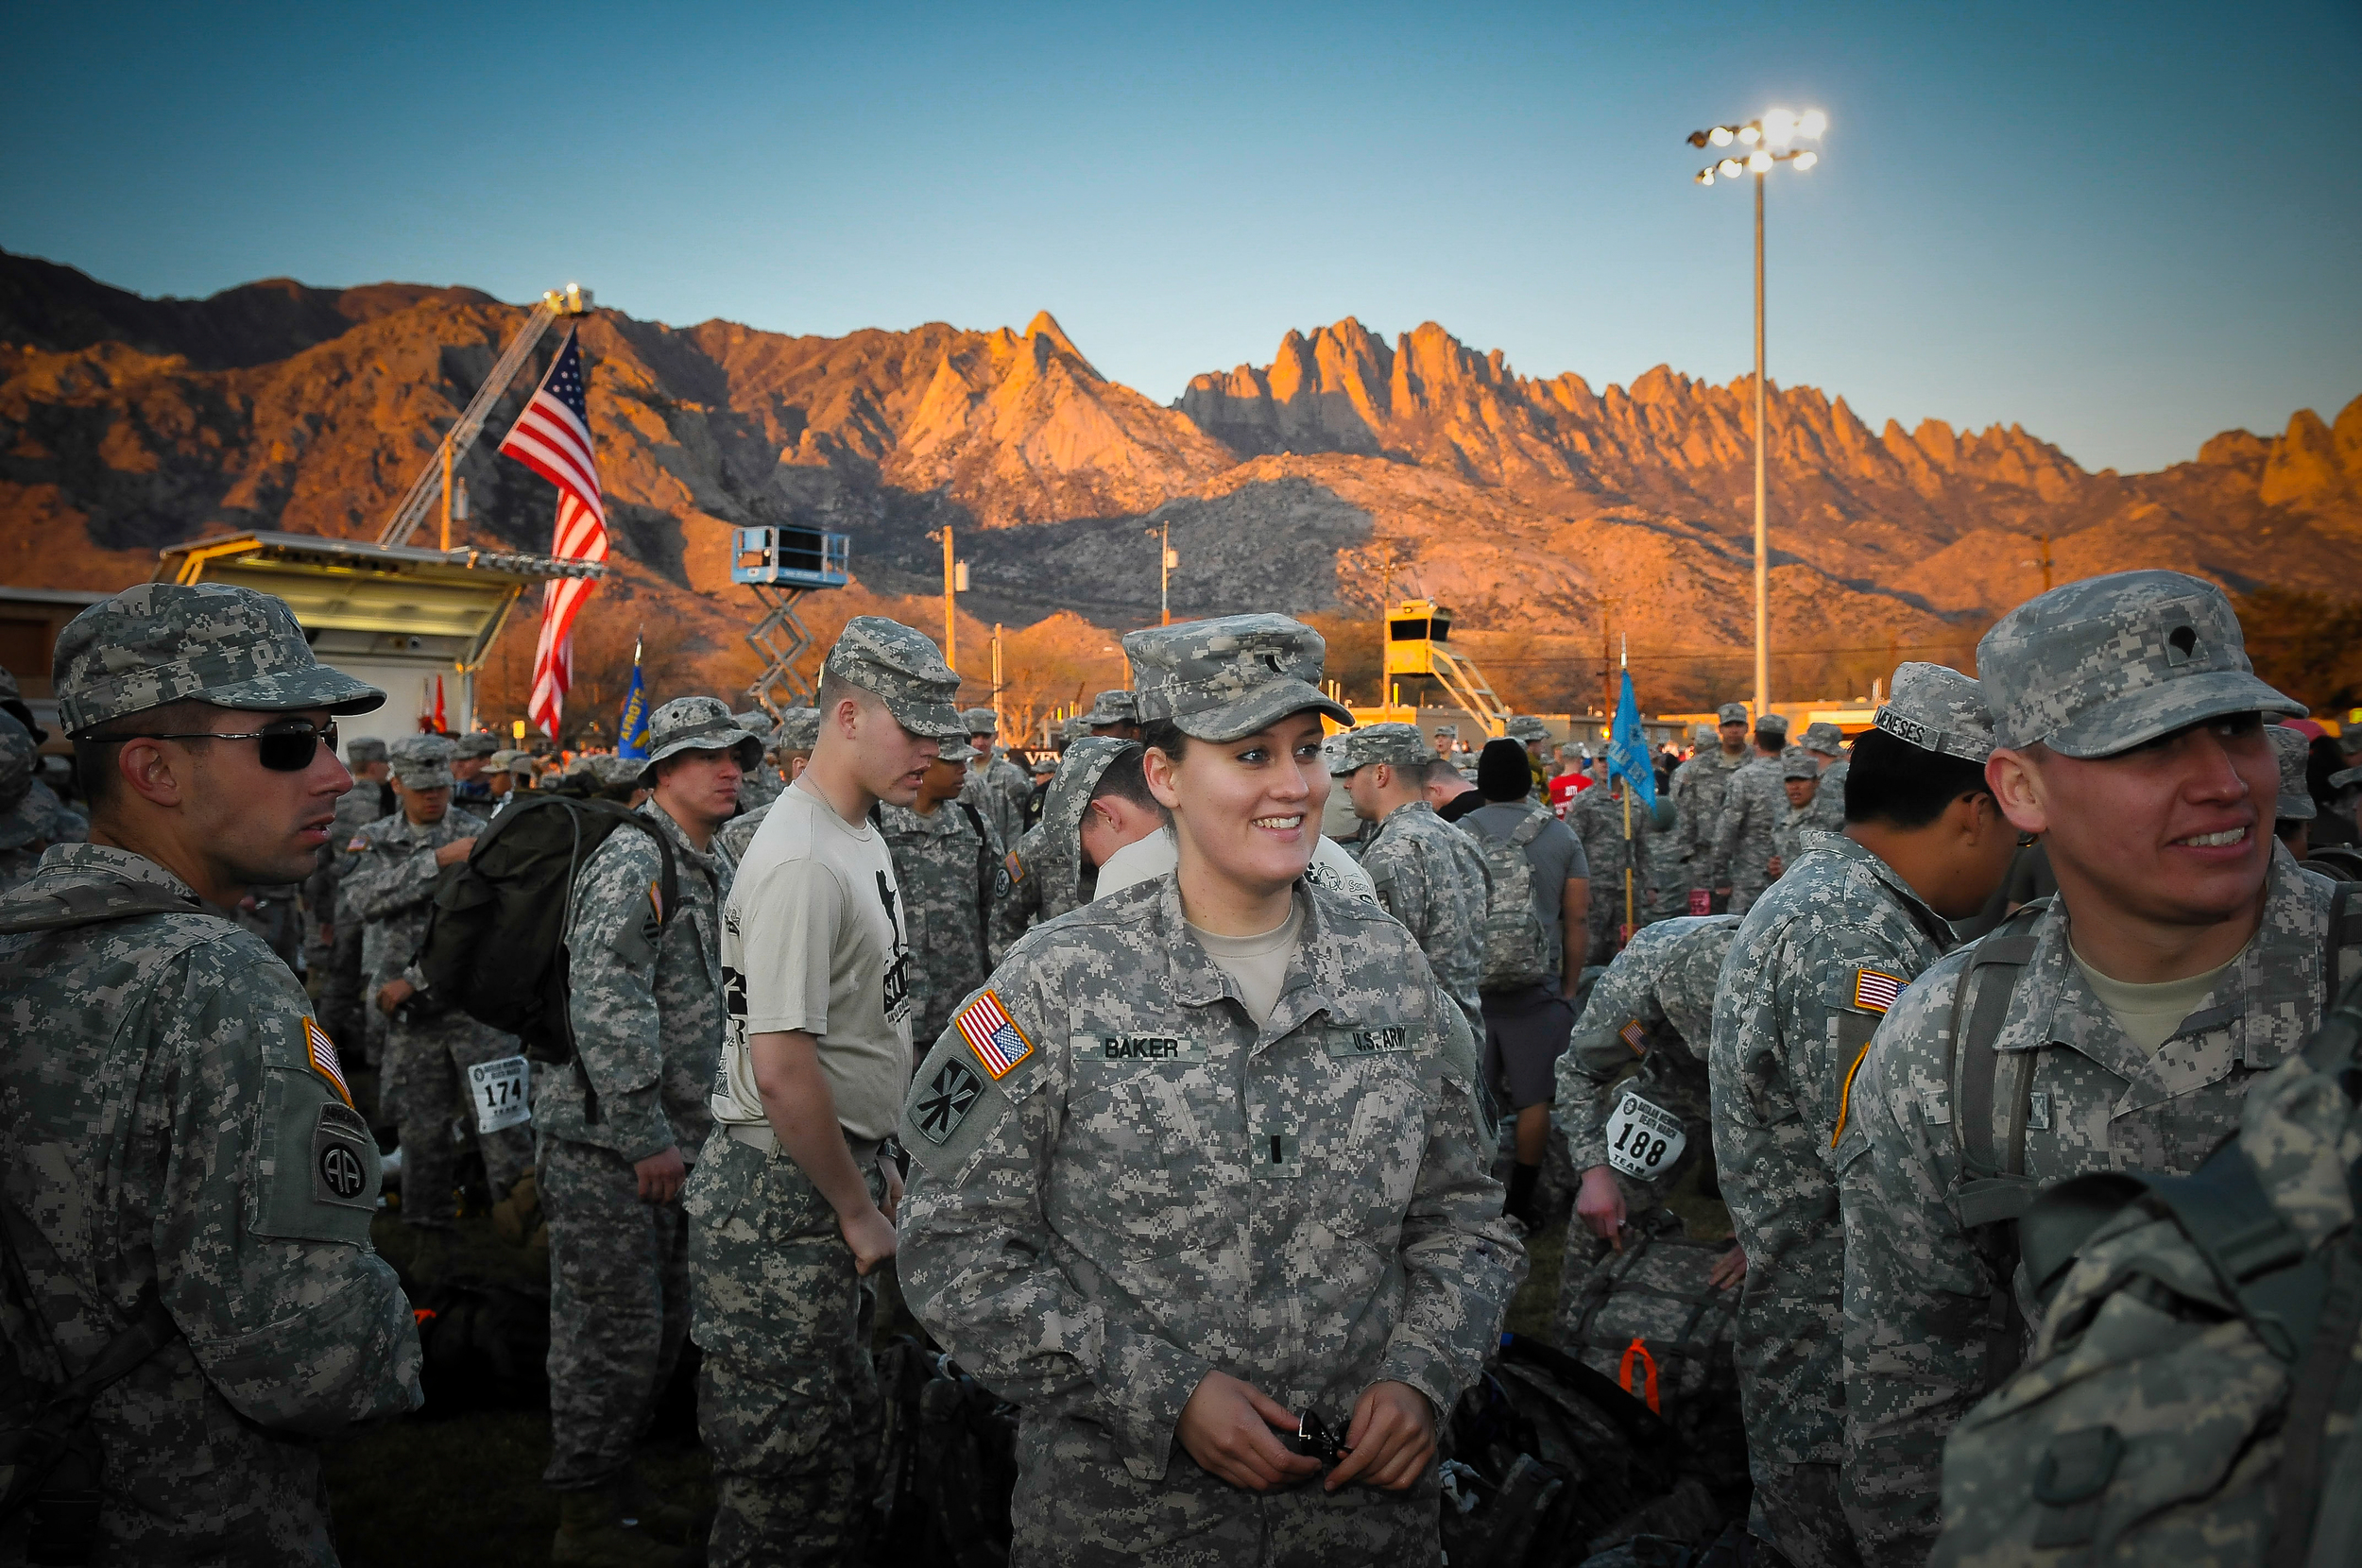 Participants at the 26th Bataan Memorial Death March on Sunday, March 22nd, 2015, at the White Sands Missile Range in New Mexico wait in a staging area to start the 26.2-mile race.